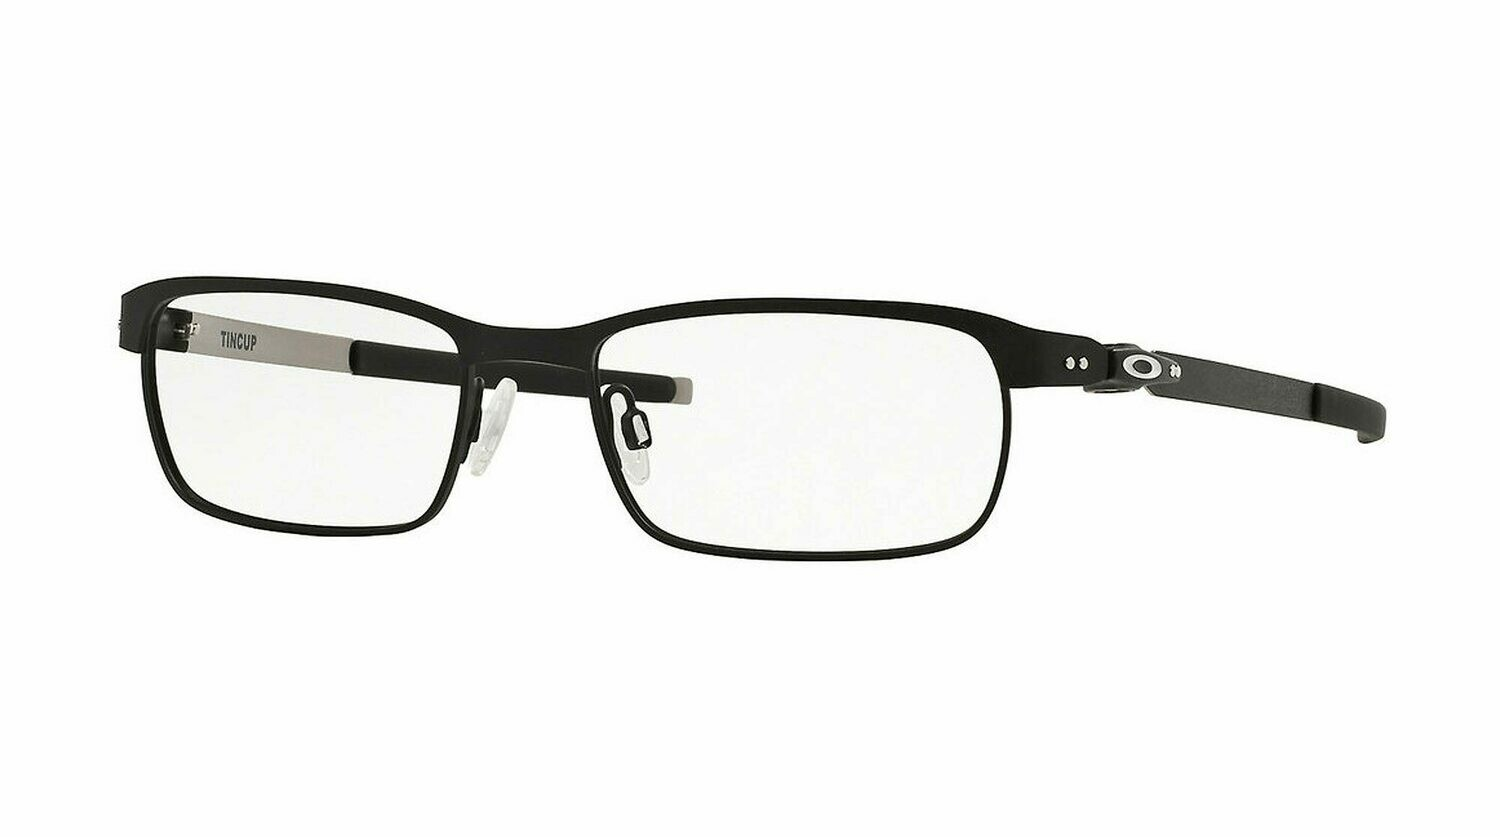 Oakley Tincup OX3184 Glasses (2)